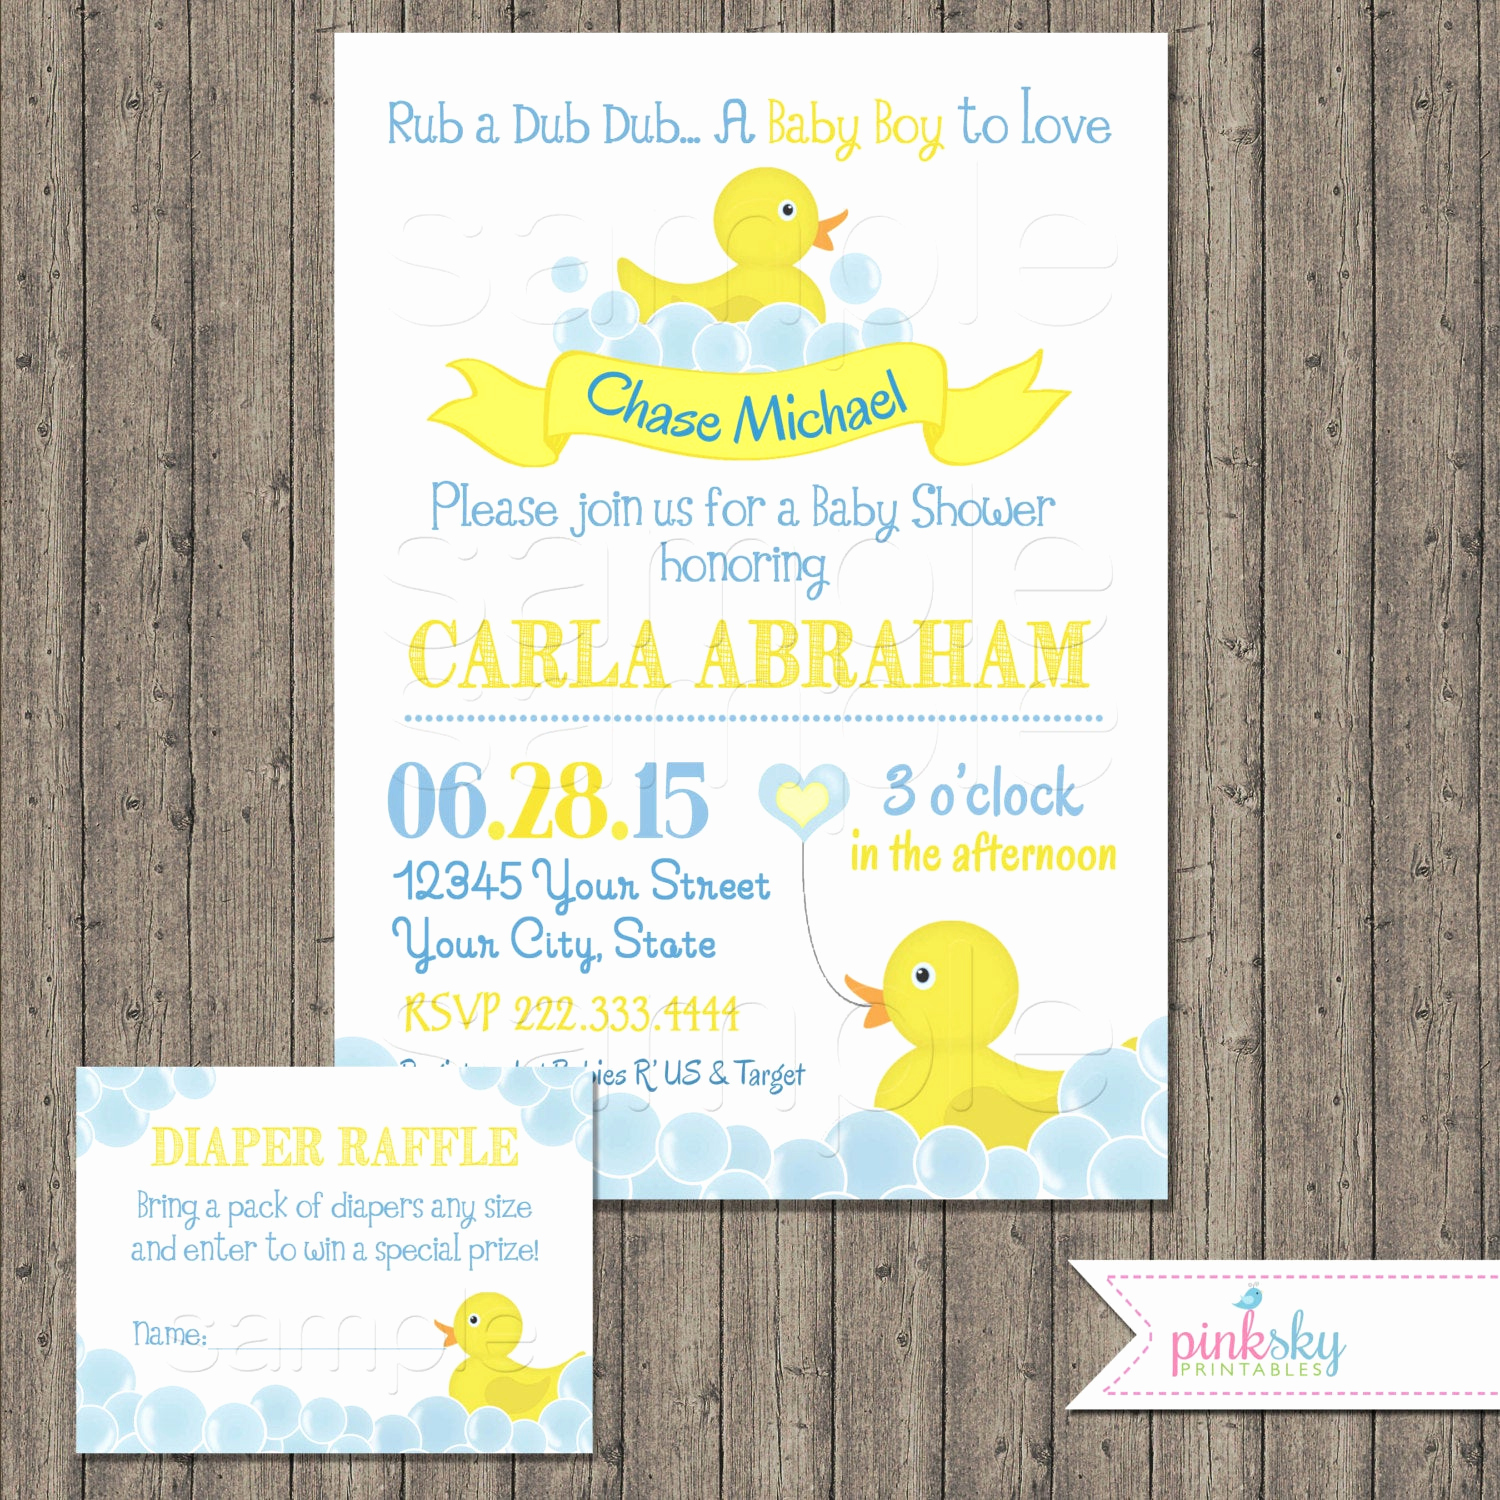 Rubber Duck Baby Shower Invitation Luxury Rubber Ducky Baby Shower Invitation with Free Diaper Raffle